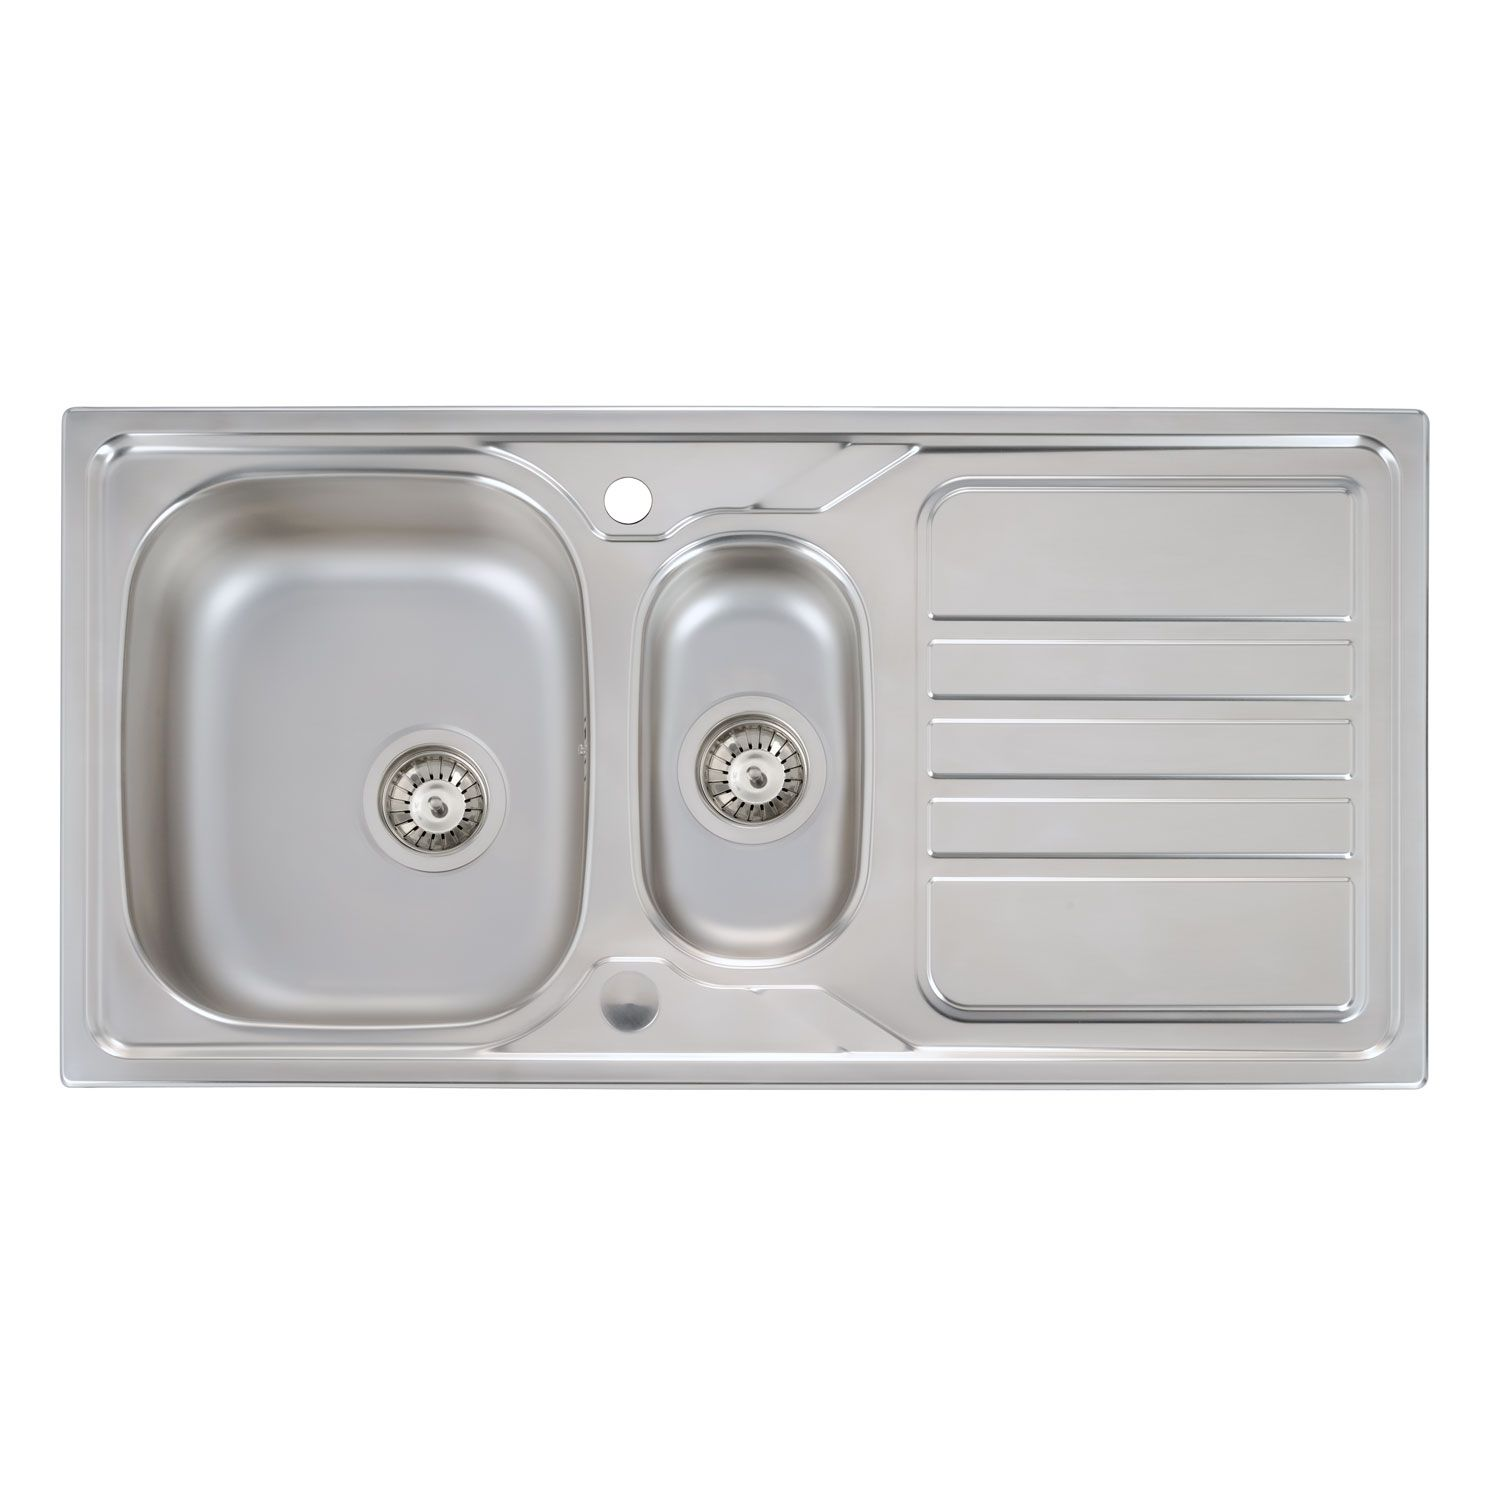 mikro 1 5 bowl kitchen sink     abode mikro 1 5 bowl stainless steel sink   sinks taps com  rh   sinks taps com